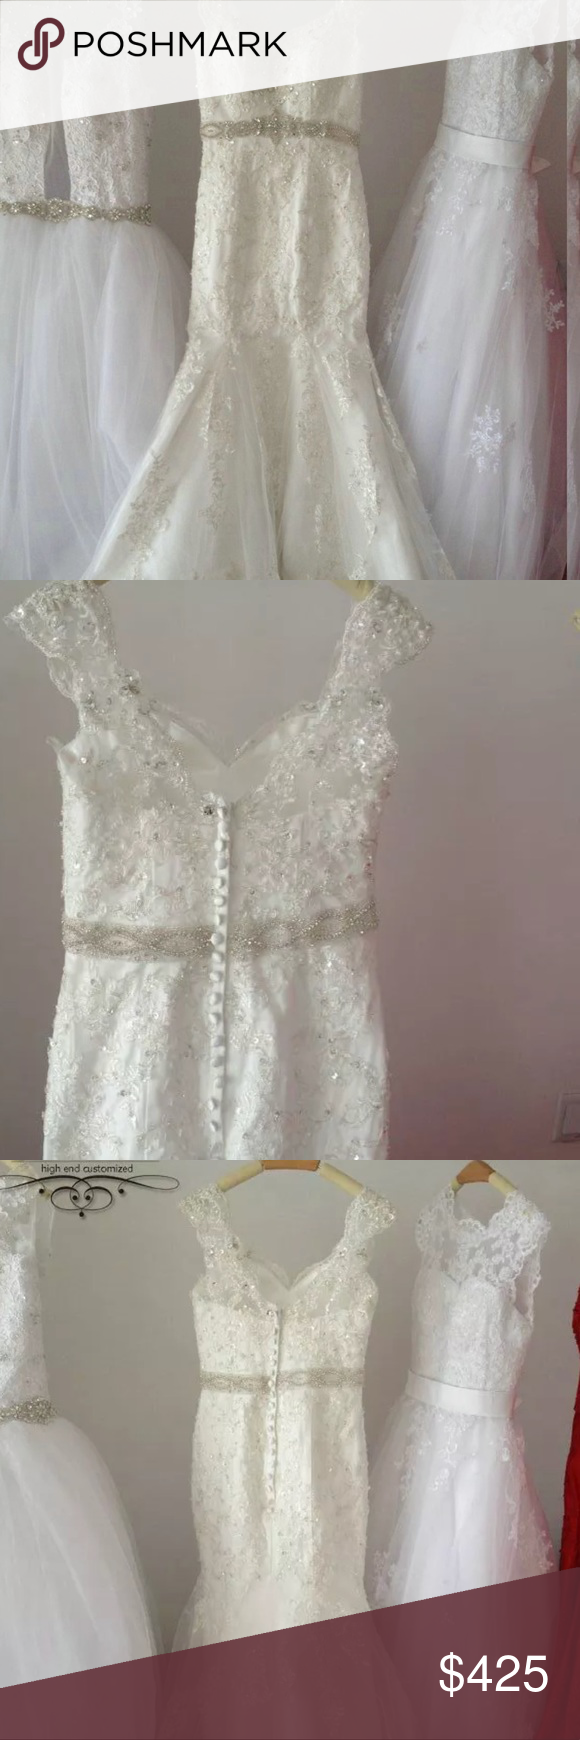 Make me a wedding dress  Custom Made Wedding Dress Make it Your Own Bonheur Bridal offers